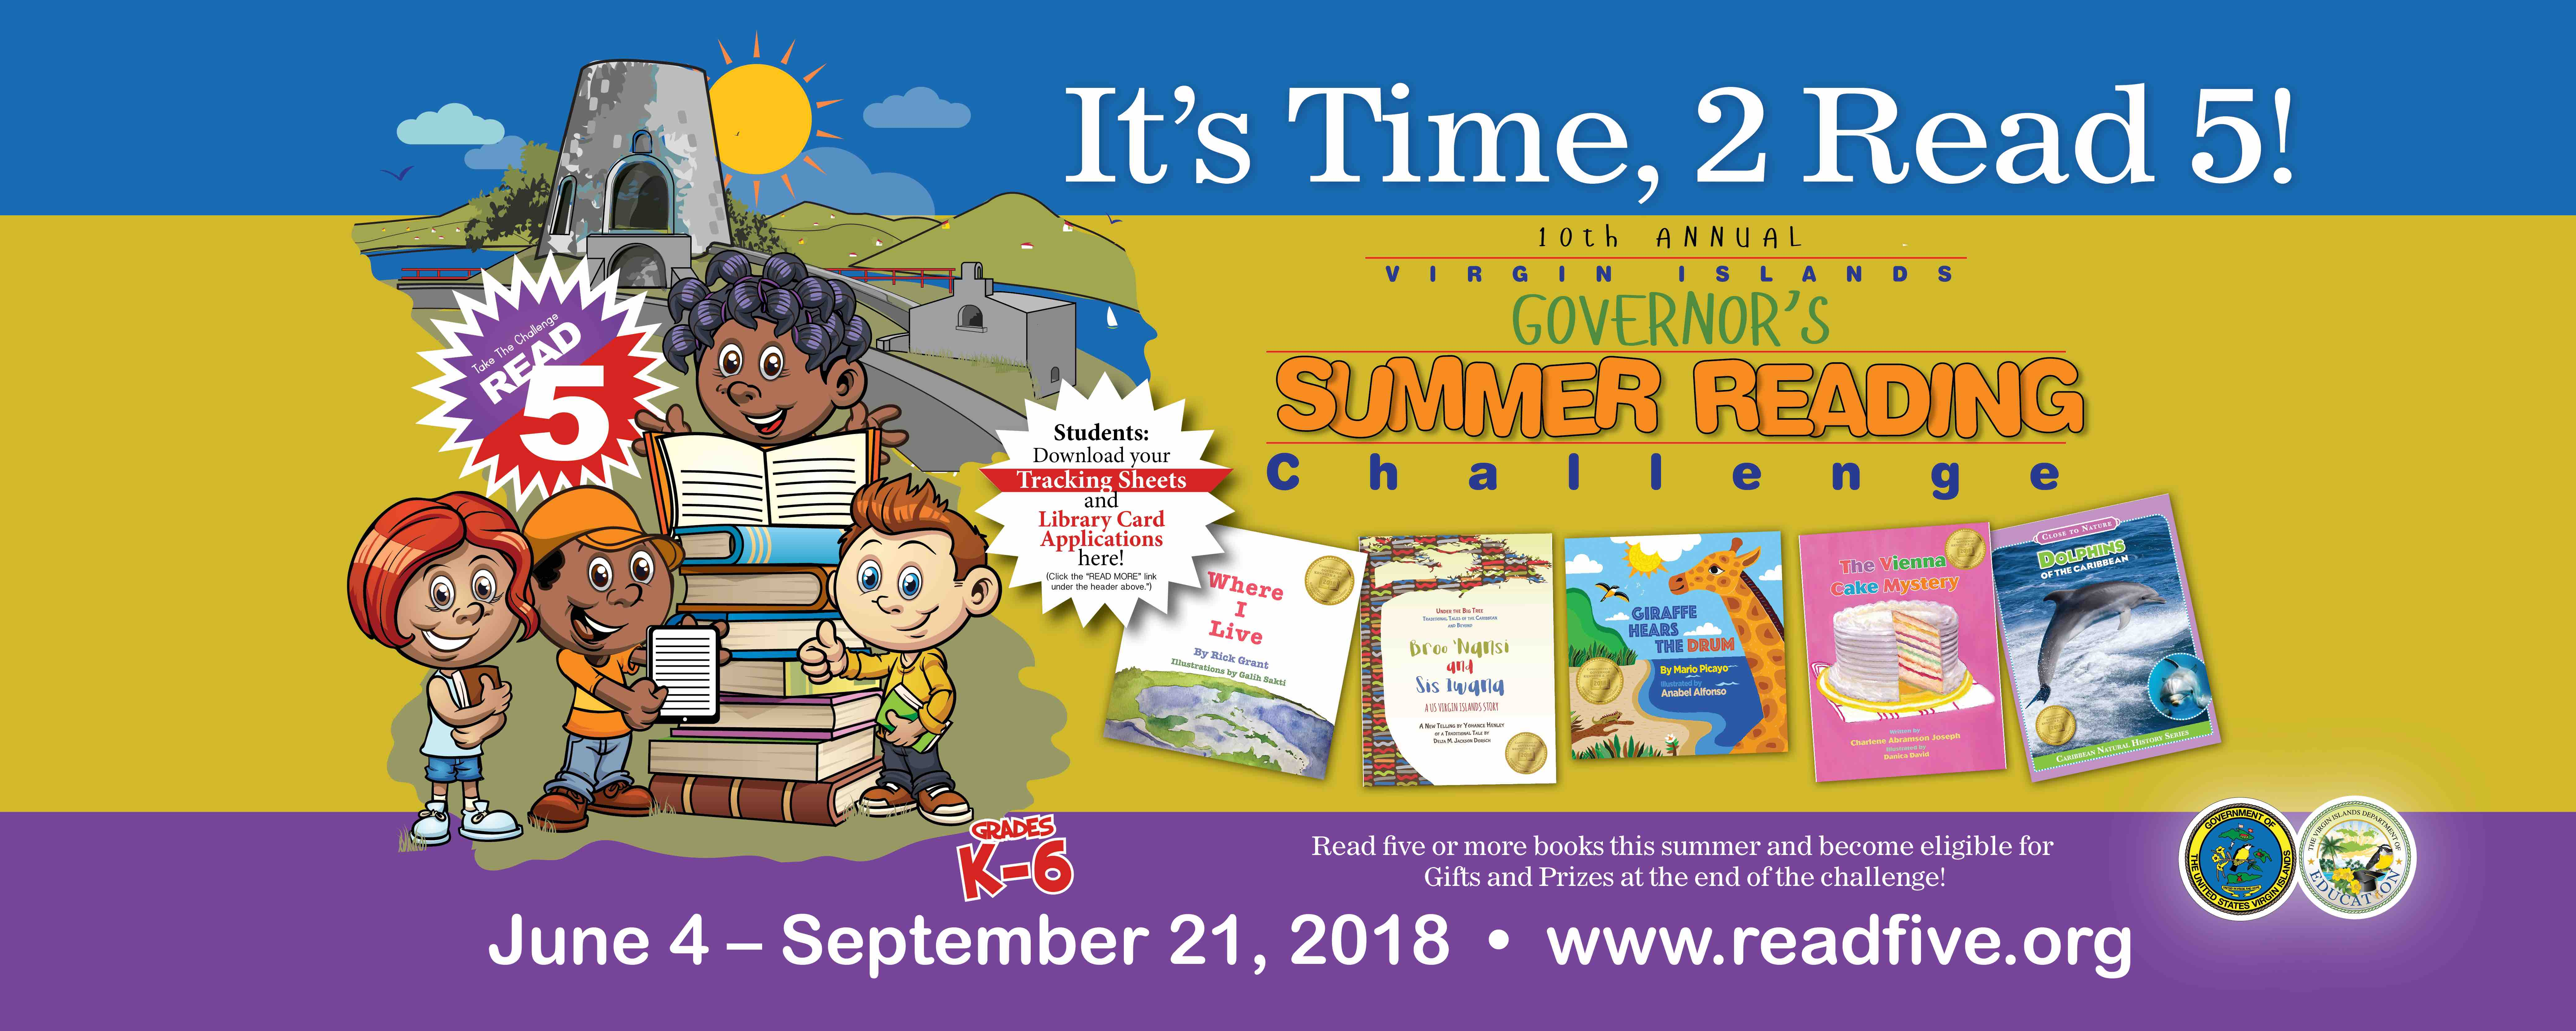 10th Annual Governor's Summer Reading Challenge